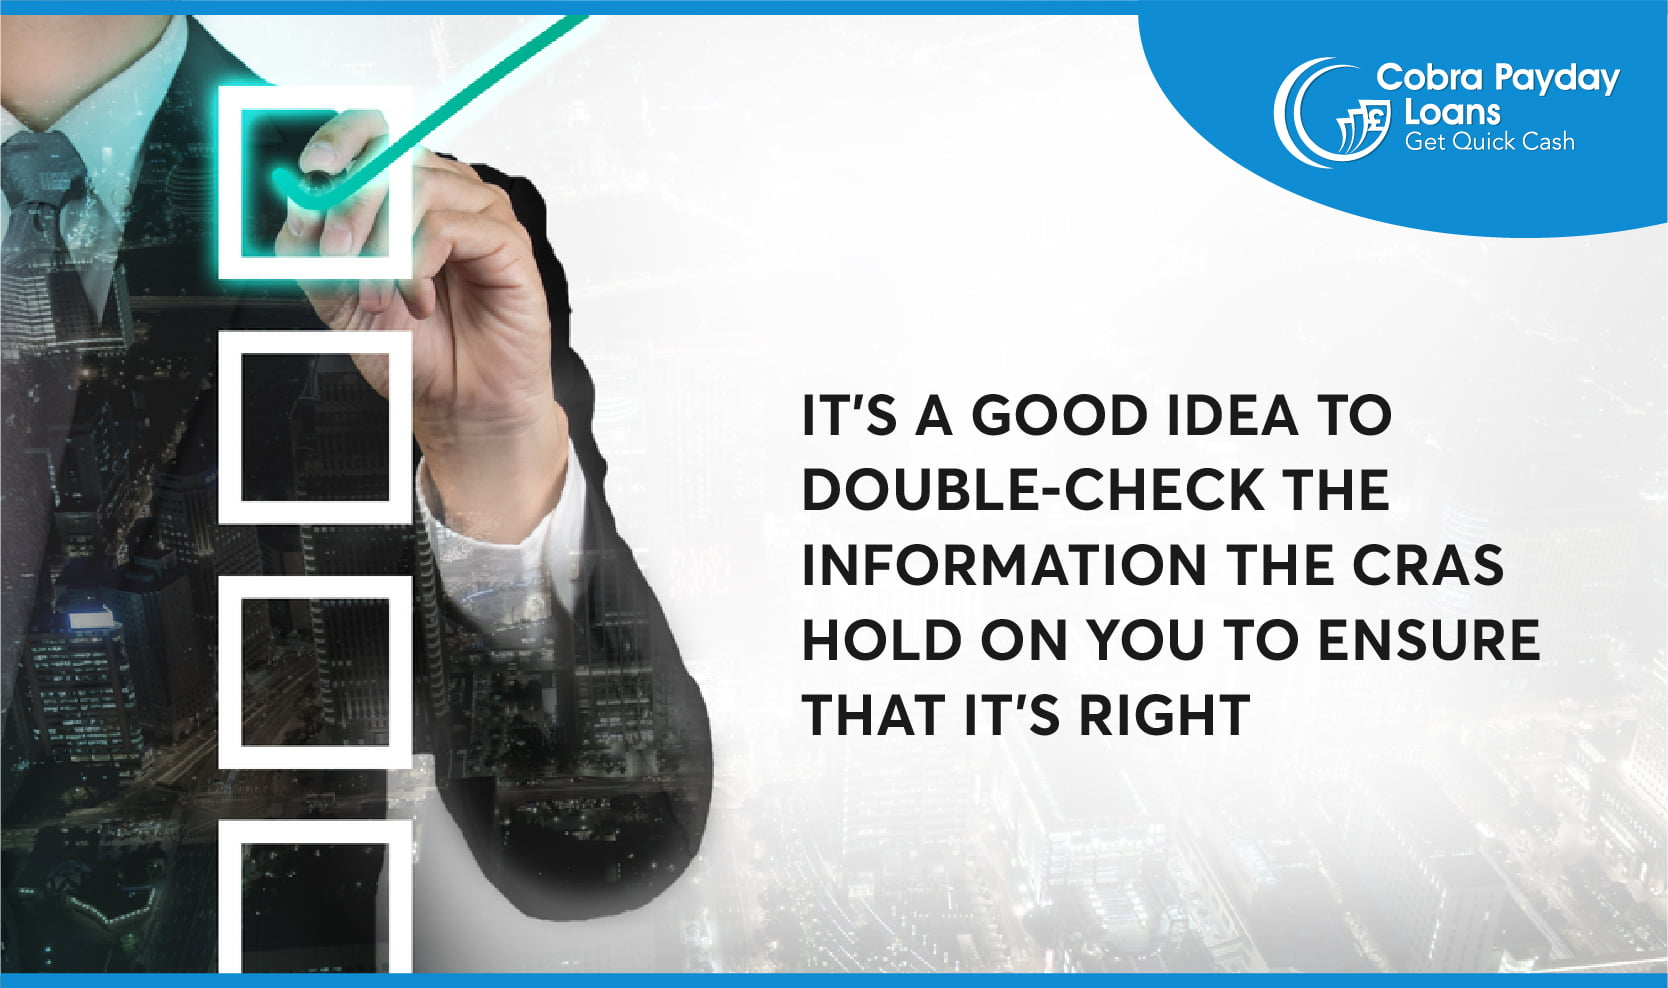 It's a good idea to double-check the information the CRAs hold on you to ensure that it's right